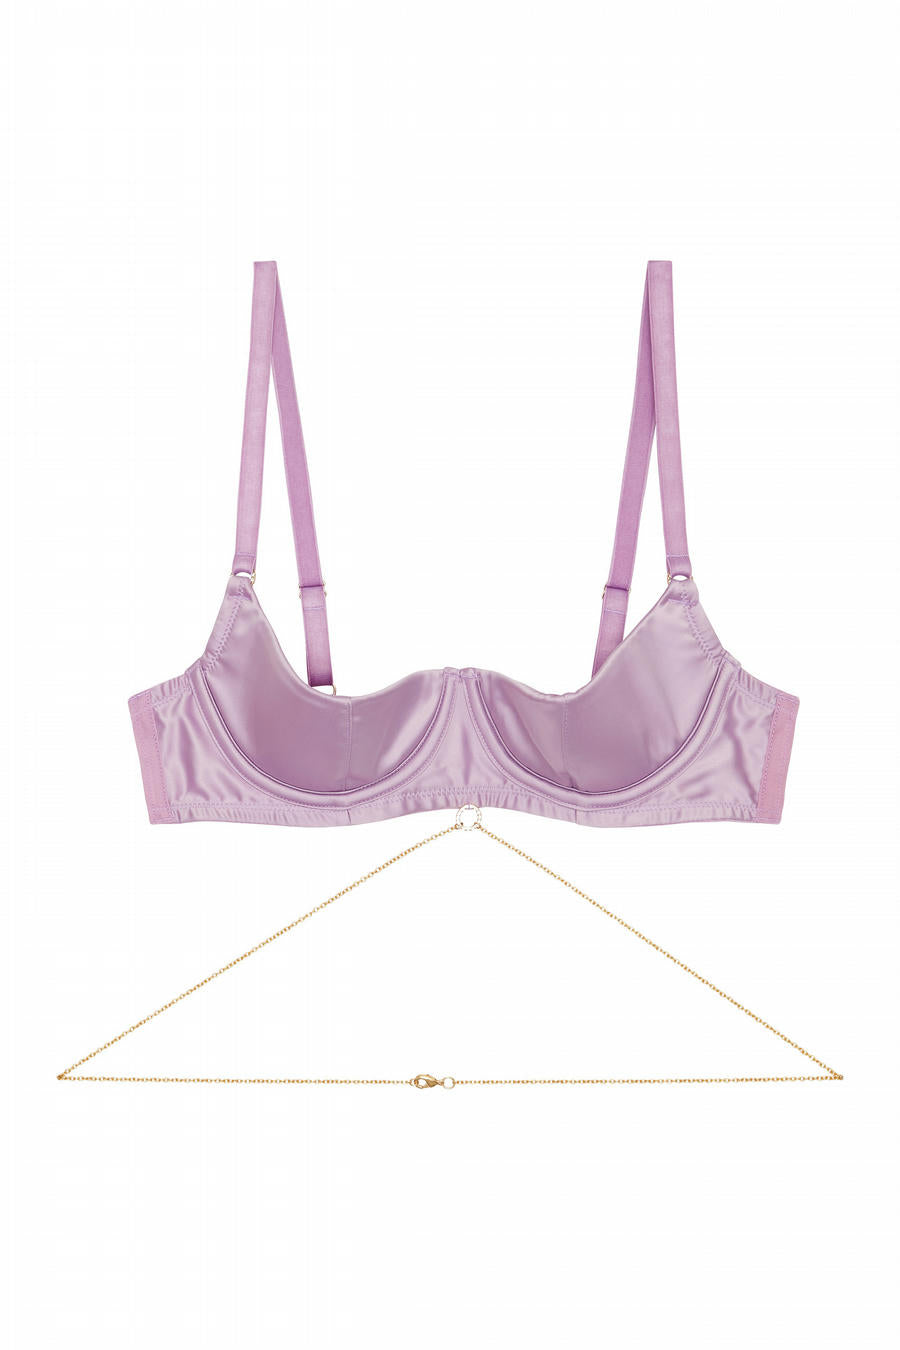 Knox Quarter Cup Bra with Chain - 32F-44K